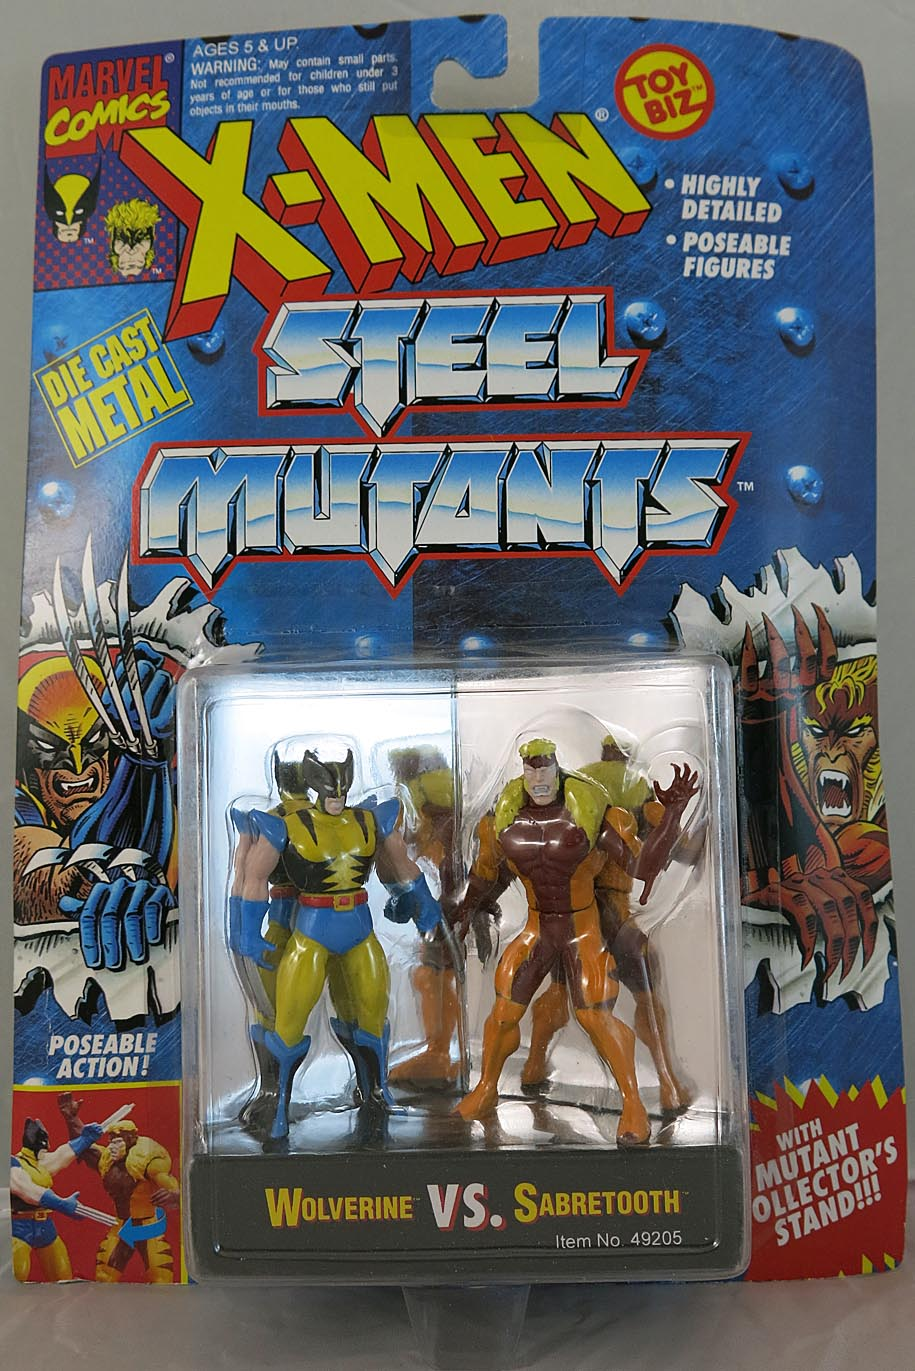 X-Men Steel Mutants (Die Cast Metal) Wolverine Vs Sabretooth